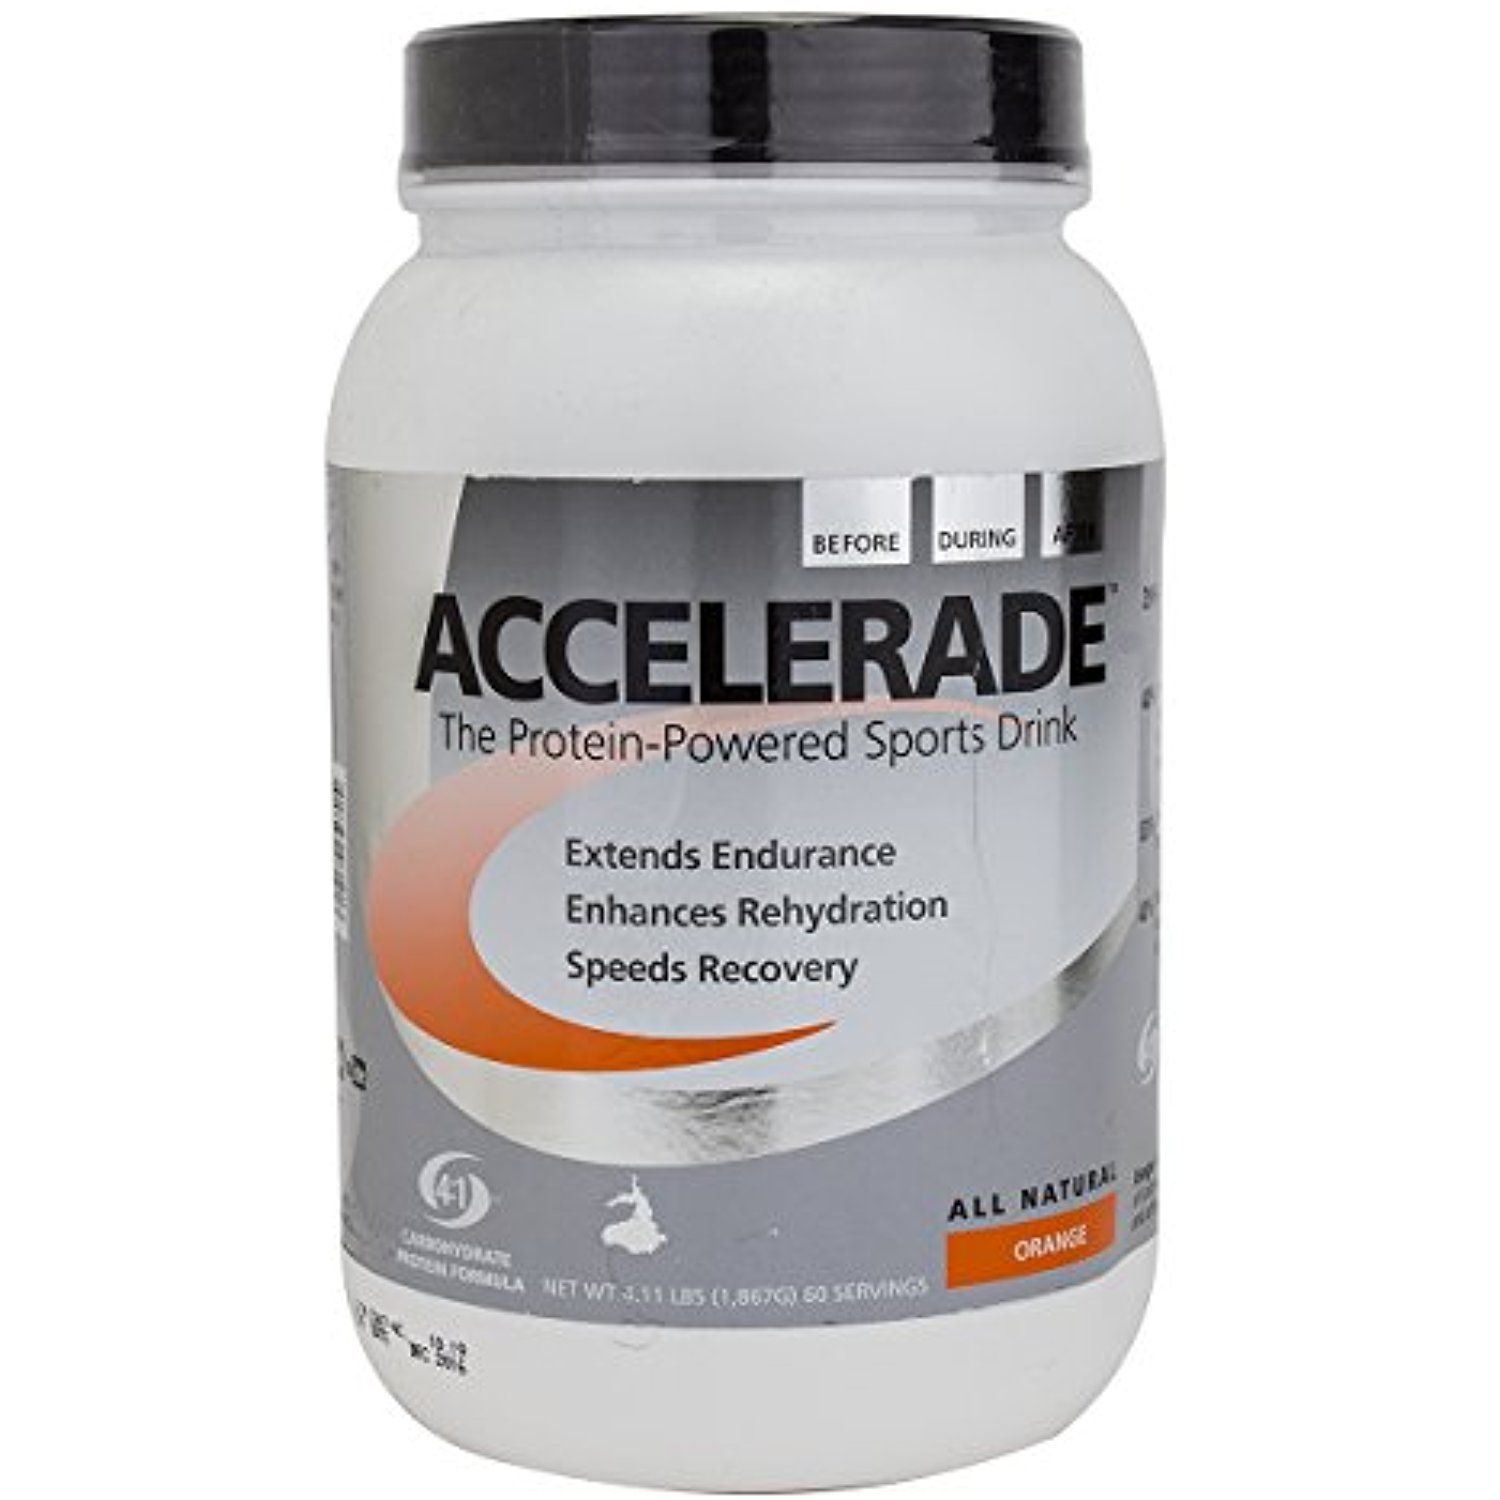 Accelerade All Natural ProteinPowered Sports Drink Mix